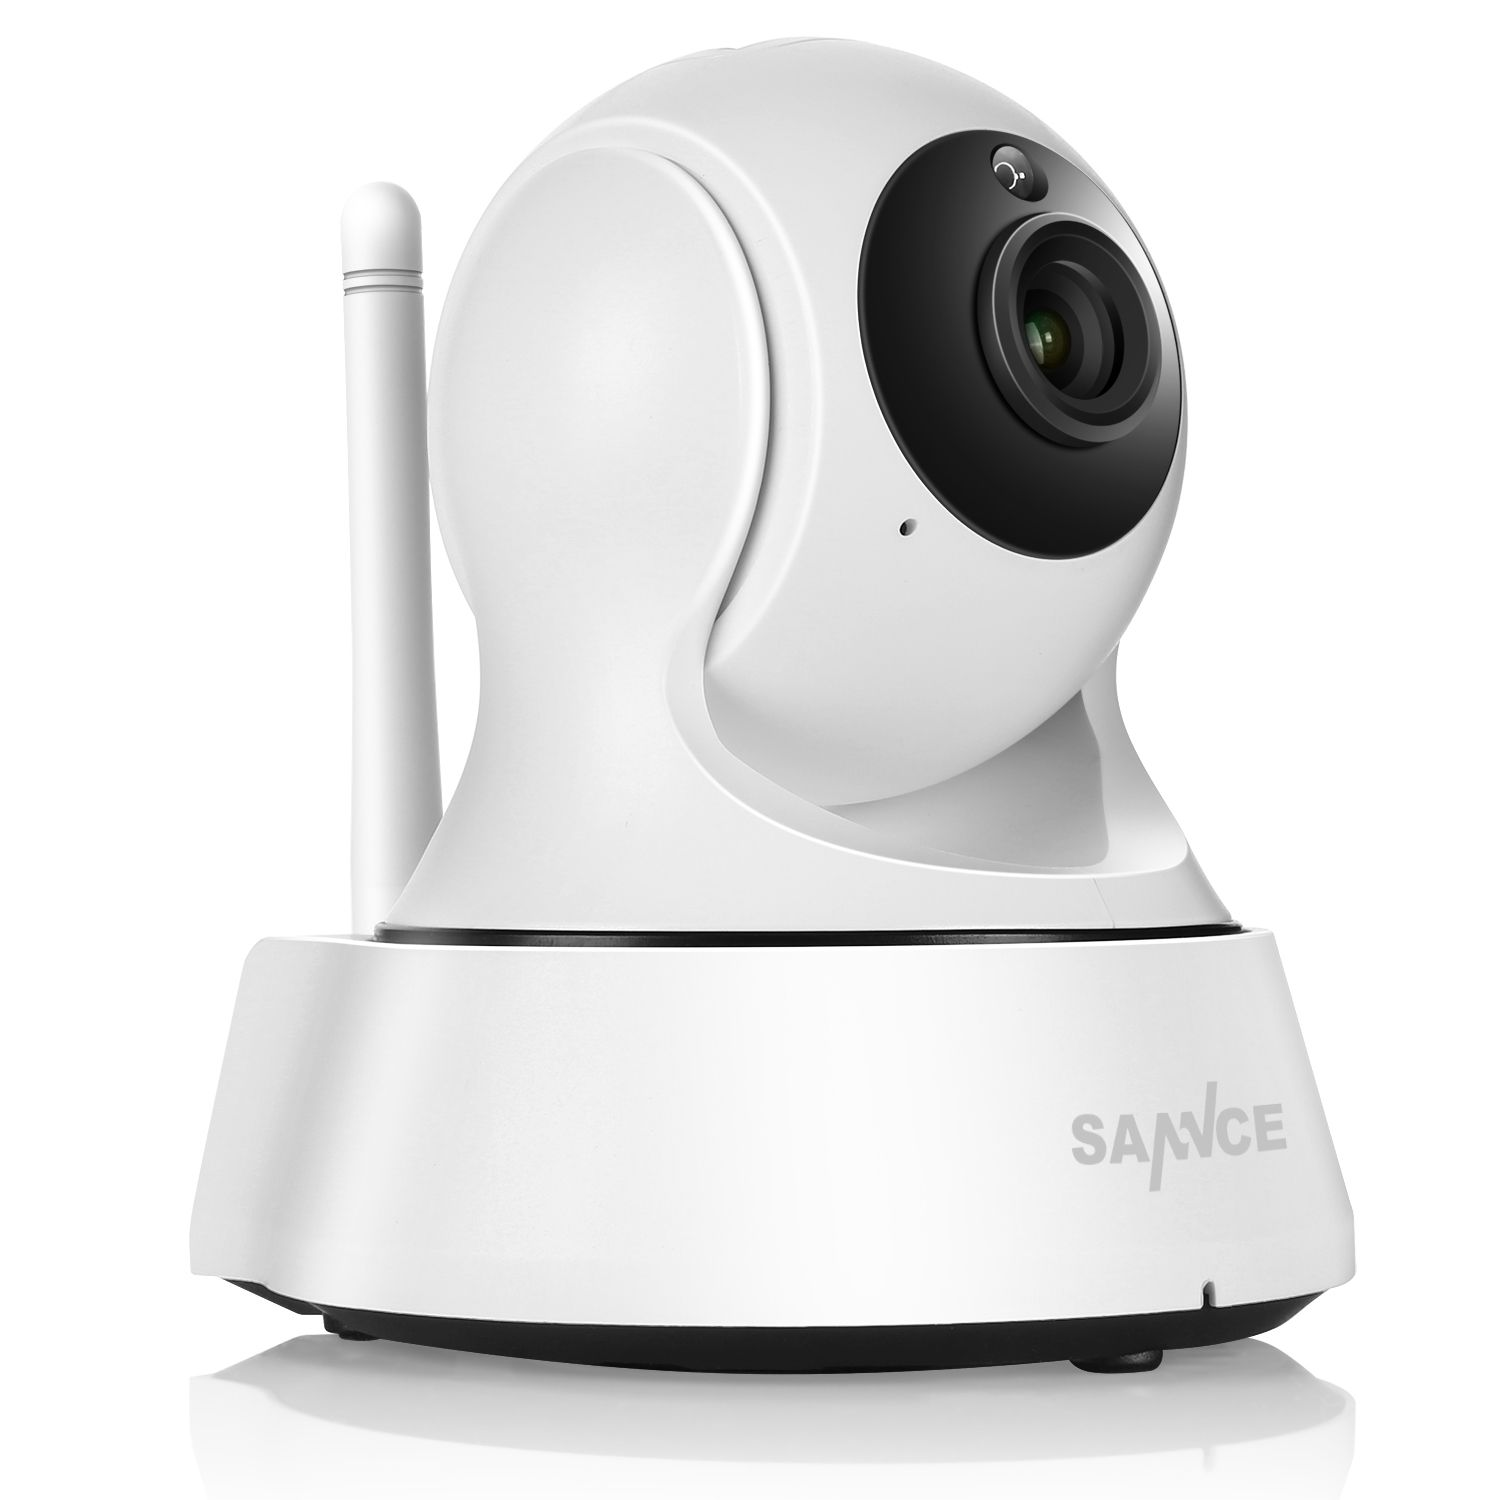 SANNCE Home Security IP Camera Wi-Fi <font><b>Wireless</b></font> Mini Network Camera Surveillance Wifi 720P Night Vision CCTV Camera Baby Monitor